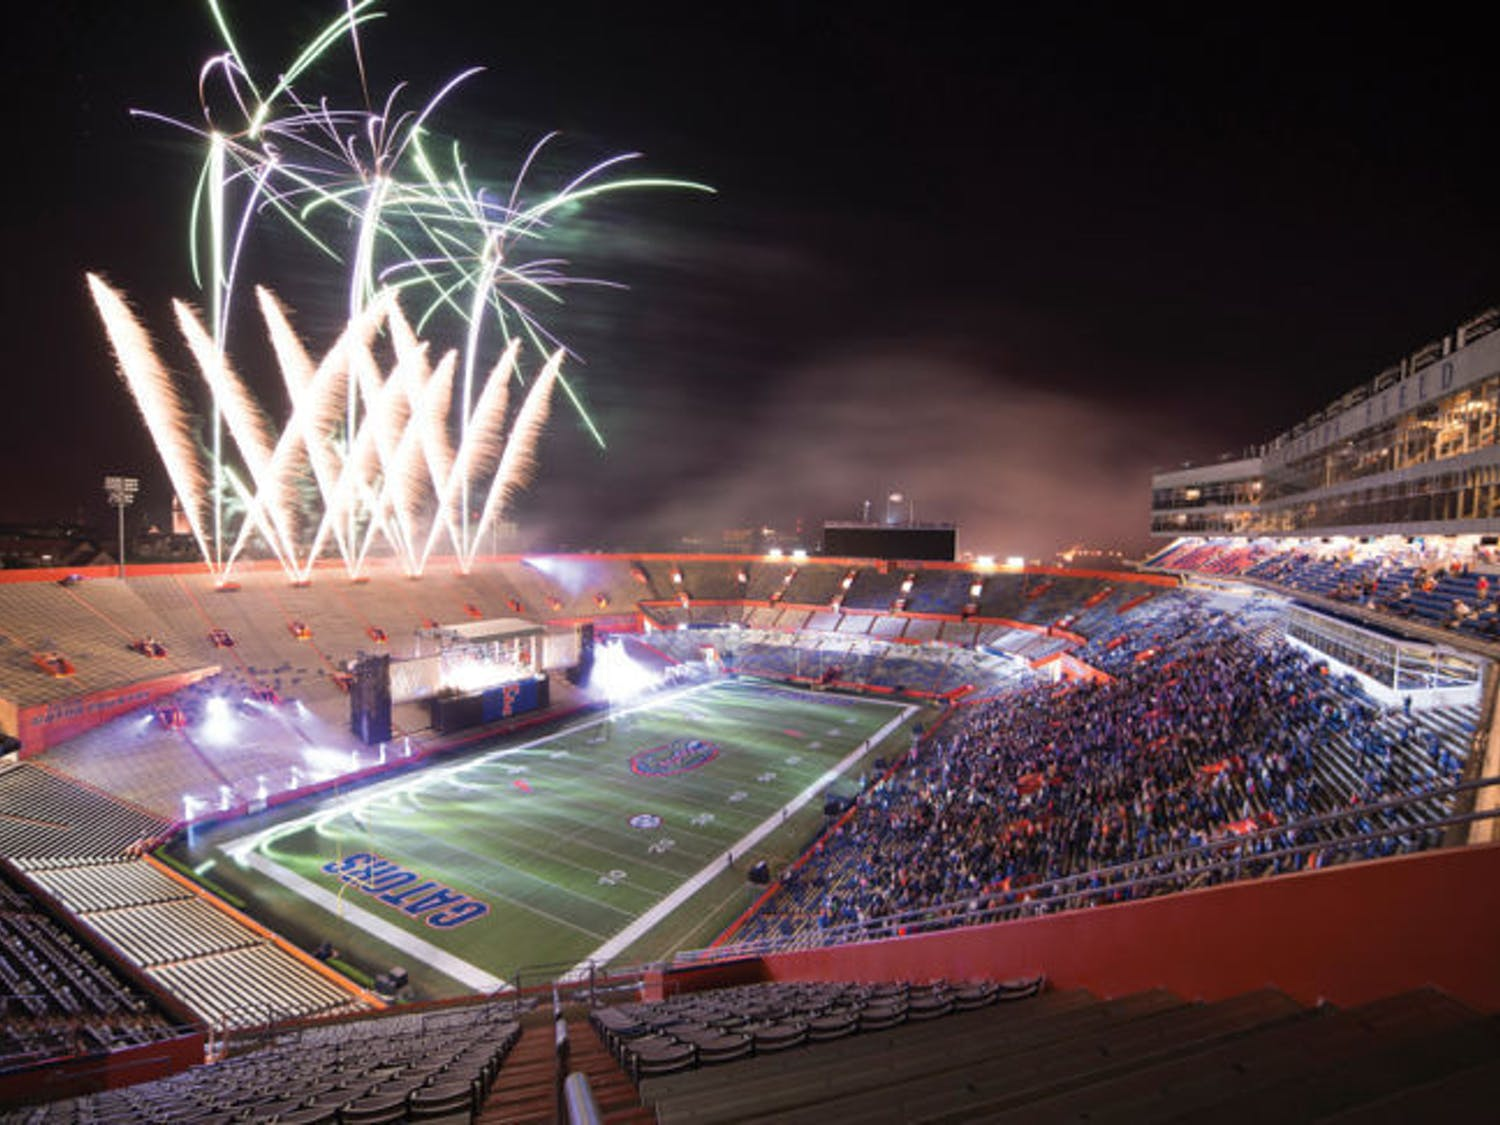 The fireworks finale over Ben Hill Griffin Stadium marks the end of the 90th annual Gator Growl during UF Homecoming Friday evening. The Fray, Sister Hazel and the UF Fightin' Gator Marching Band performed for students, alumni and guests.